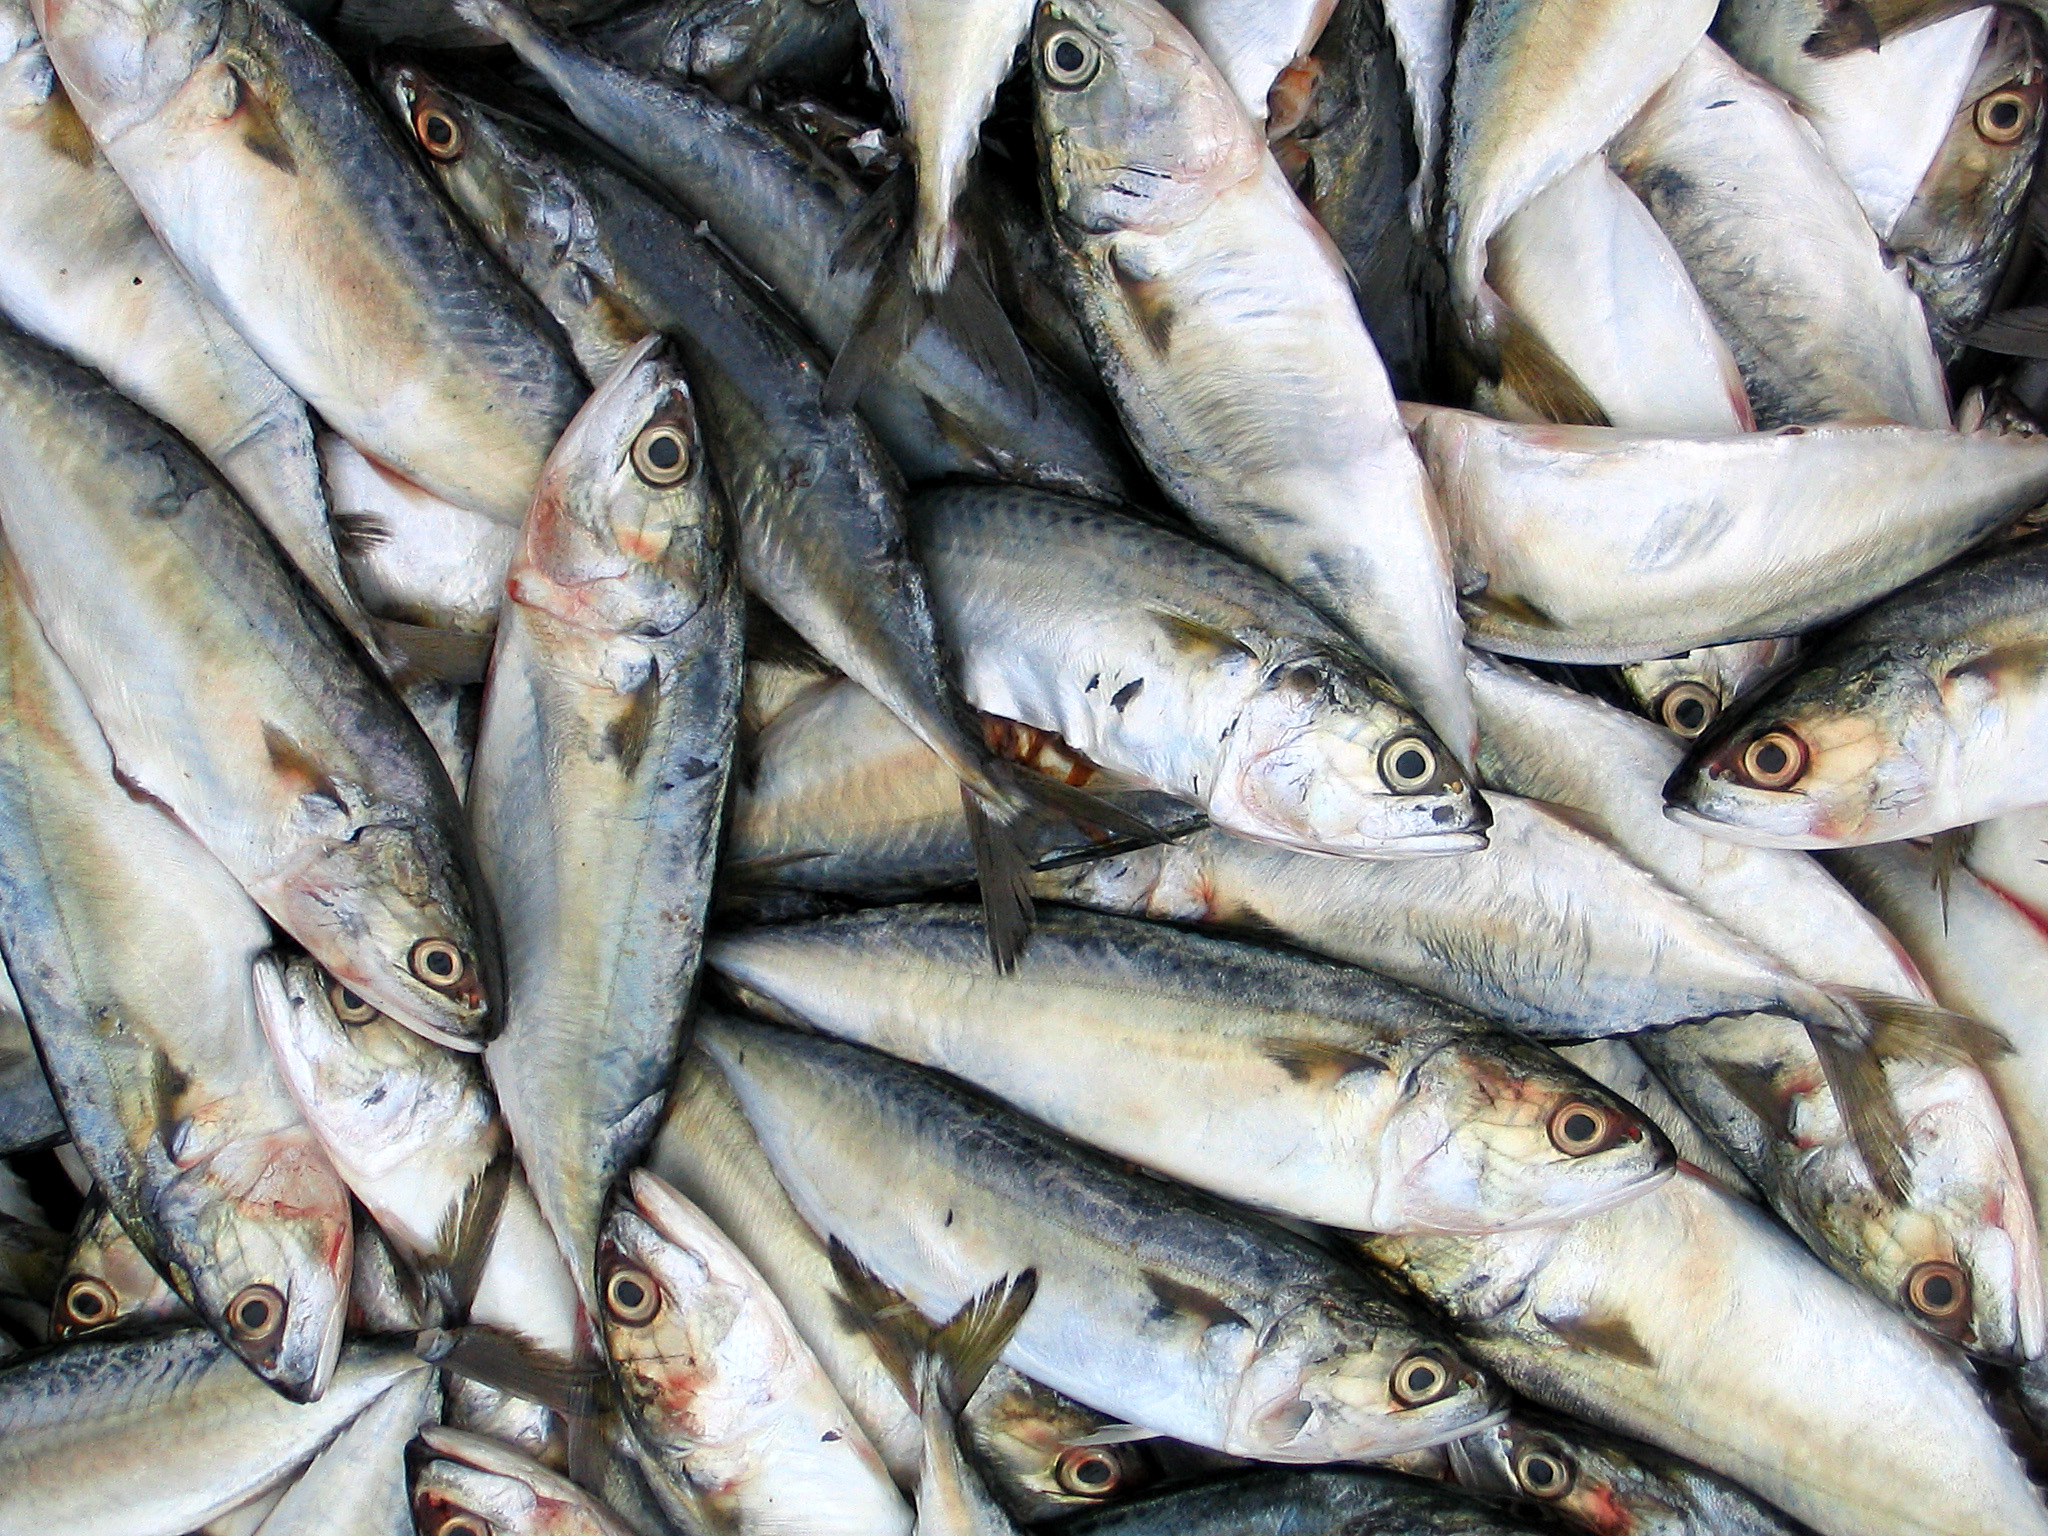 Amazing Sardines Pictures & Backgrounds